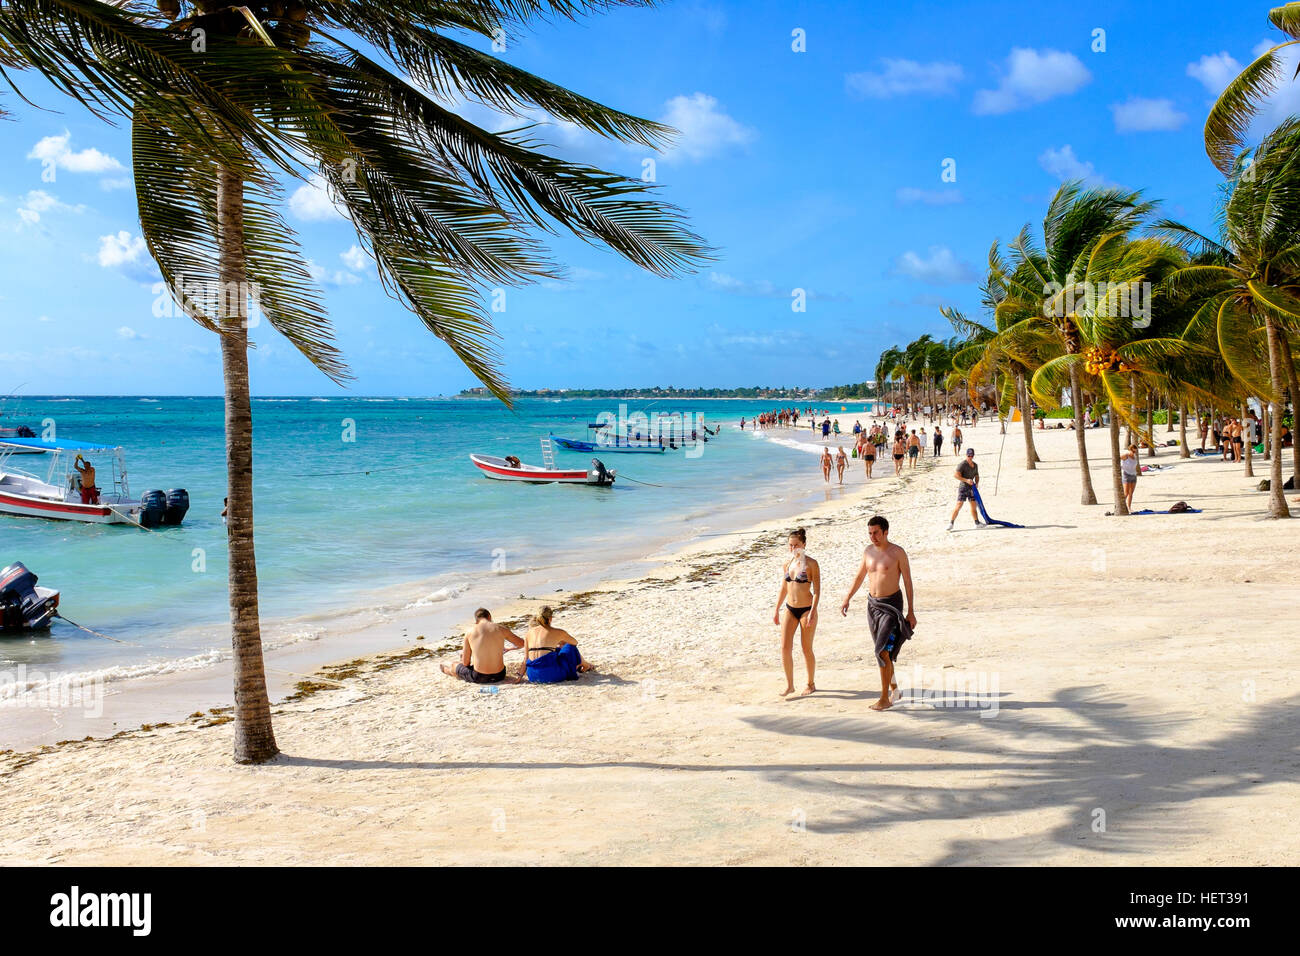 Akumal Bay, also known as Turtle Bay, Riviera Maya, near Playa Del Carmen, Mexico - Stock Image